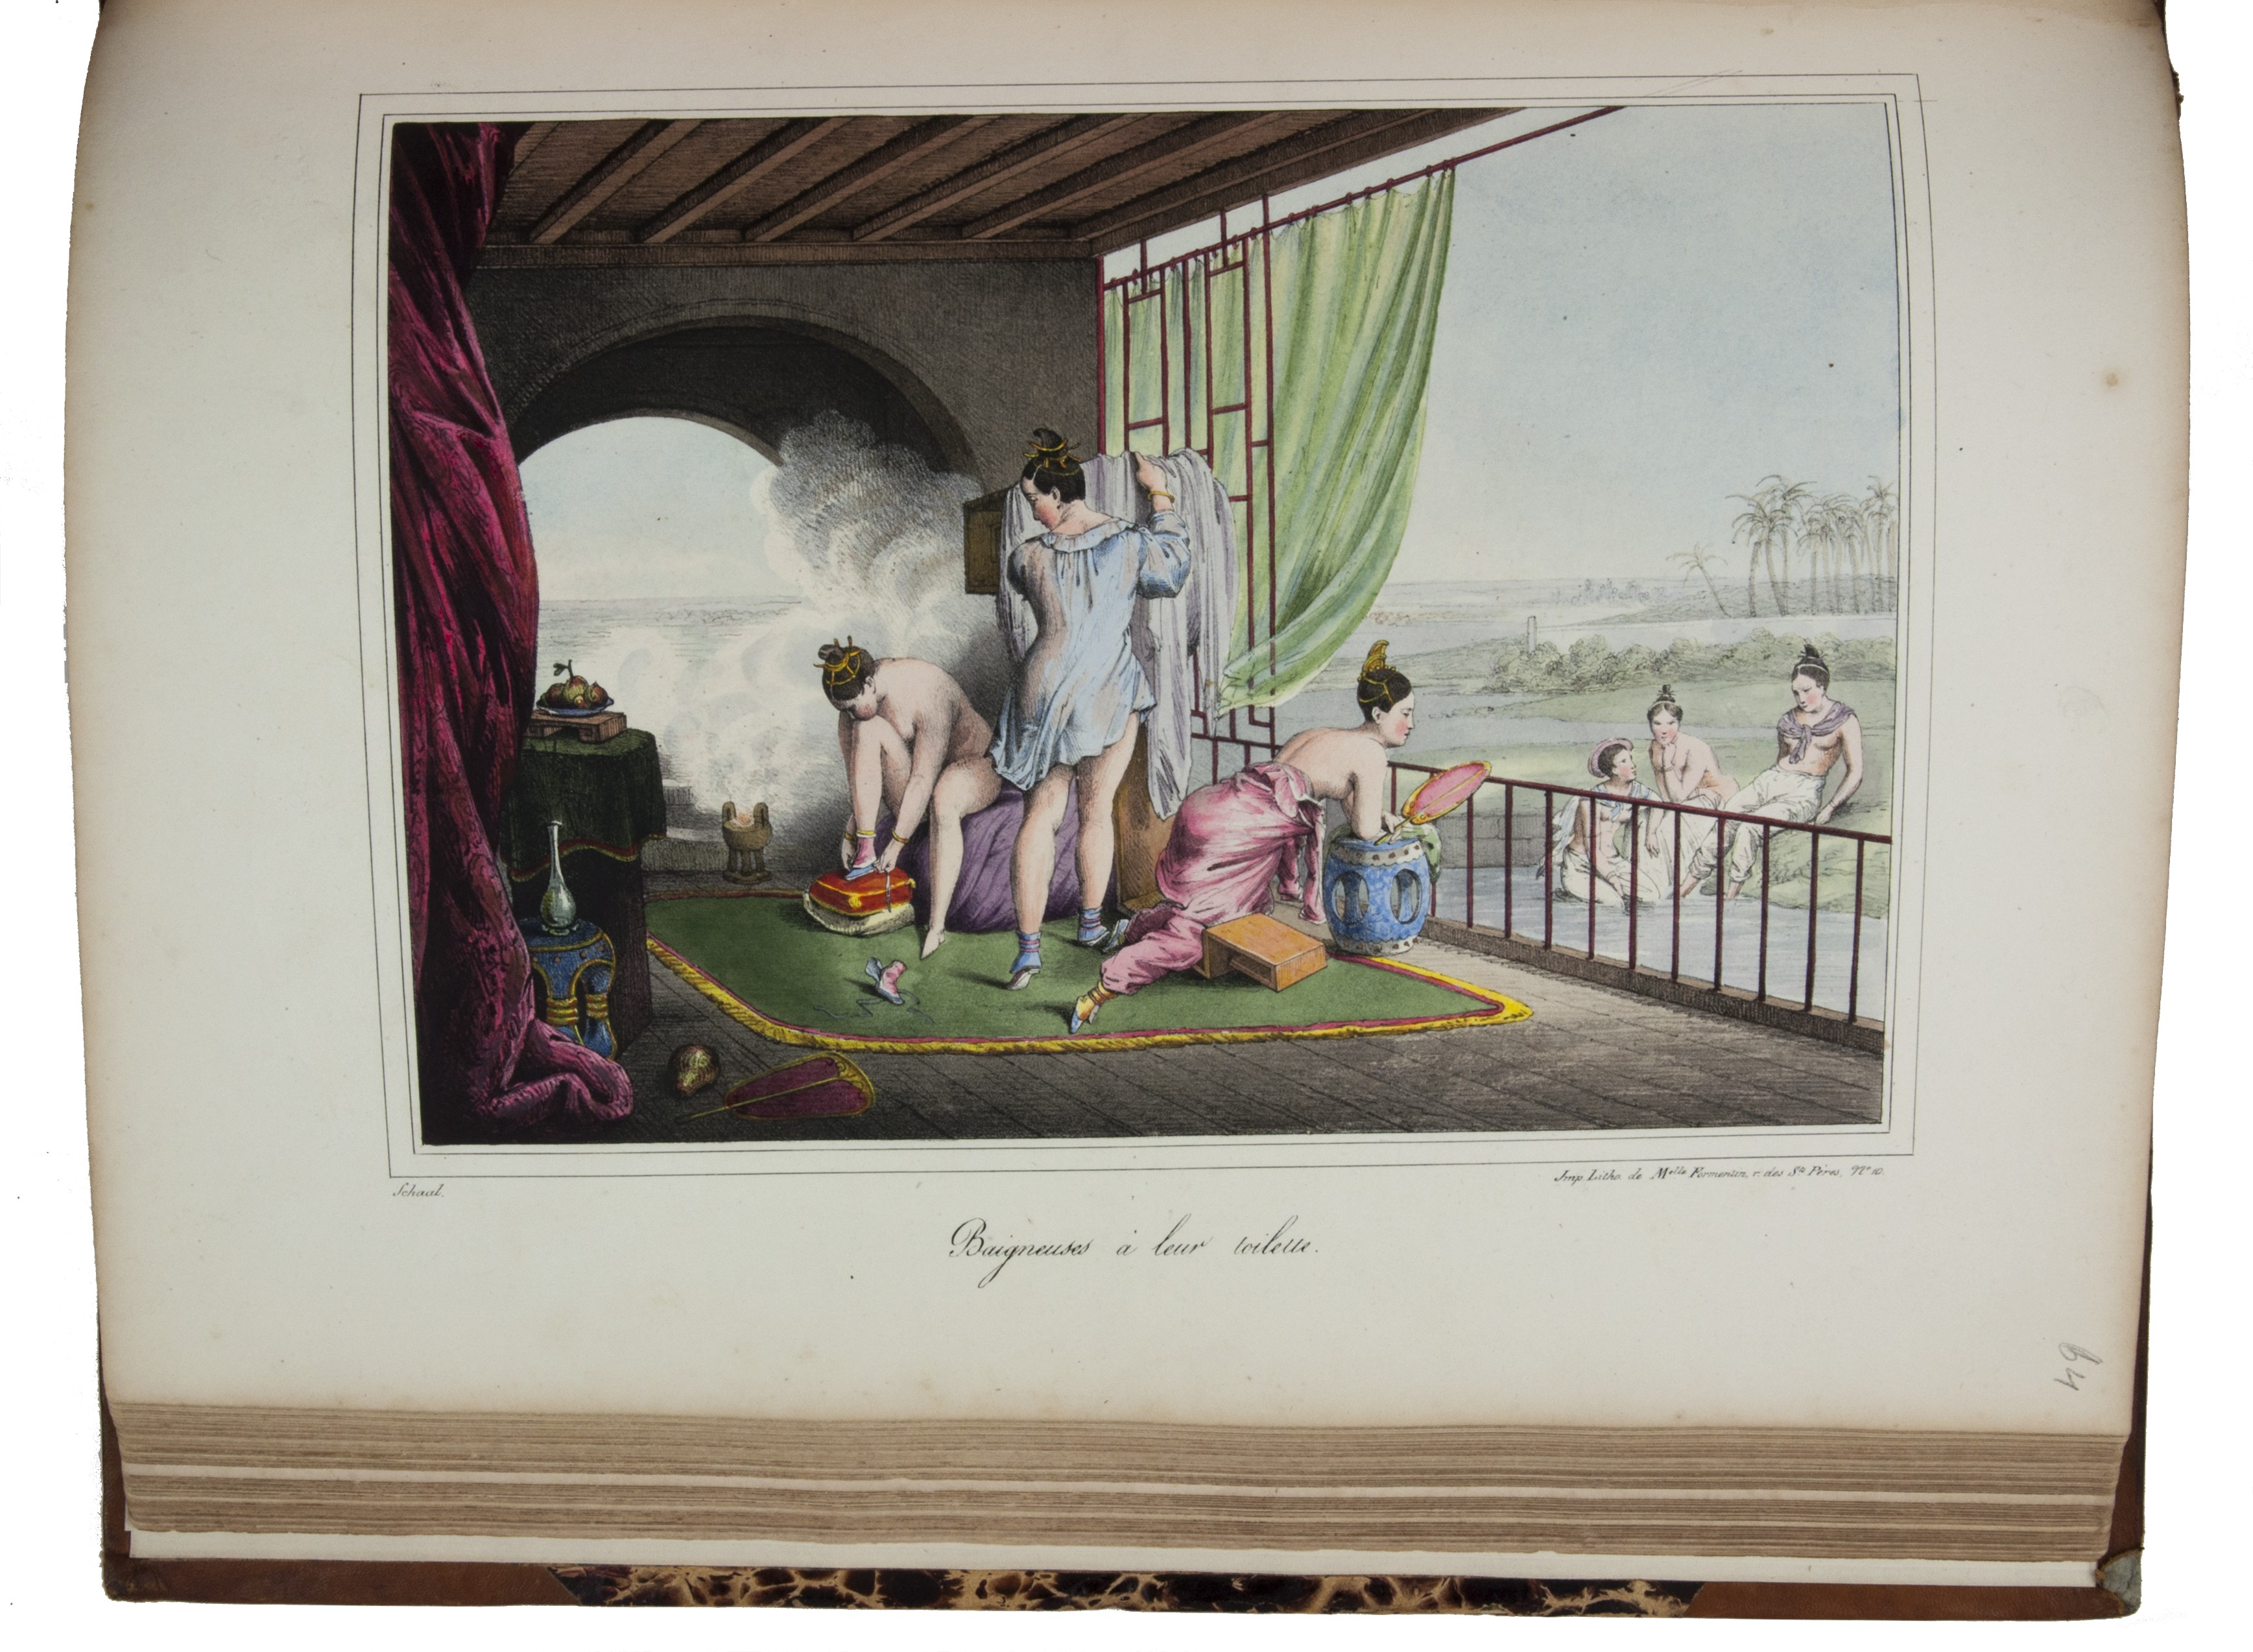 D. Bazin de Malpiere  180 hand-coloured lithographs of China 30 instalments, each consisting of 6 hand-coloured plates, and are seldom found complete. This copy lacks only one plate and description Circa 1825-27 - Courtesy of Antiquariaat Forum BV